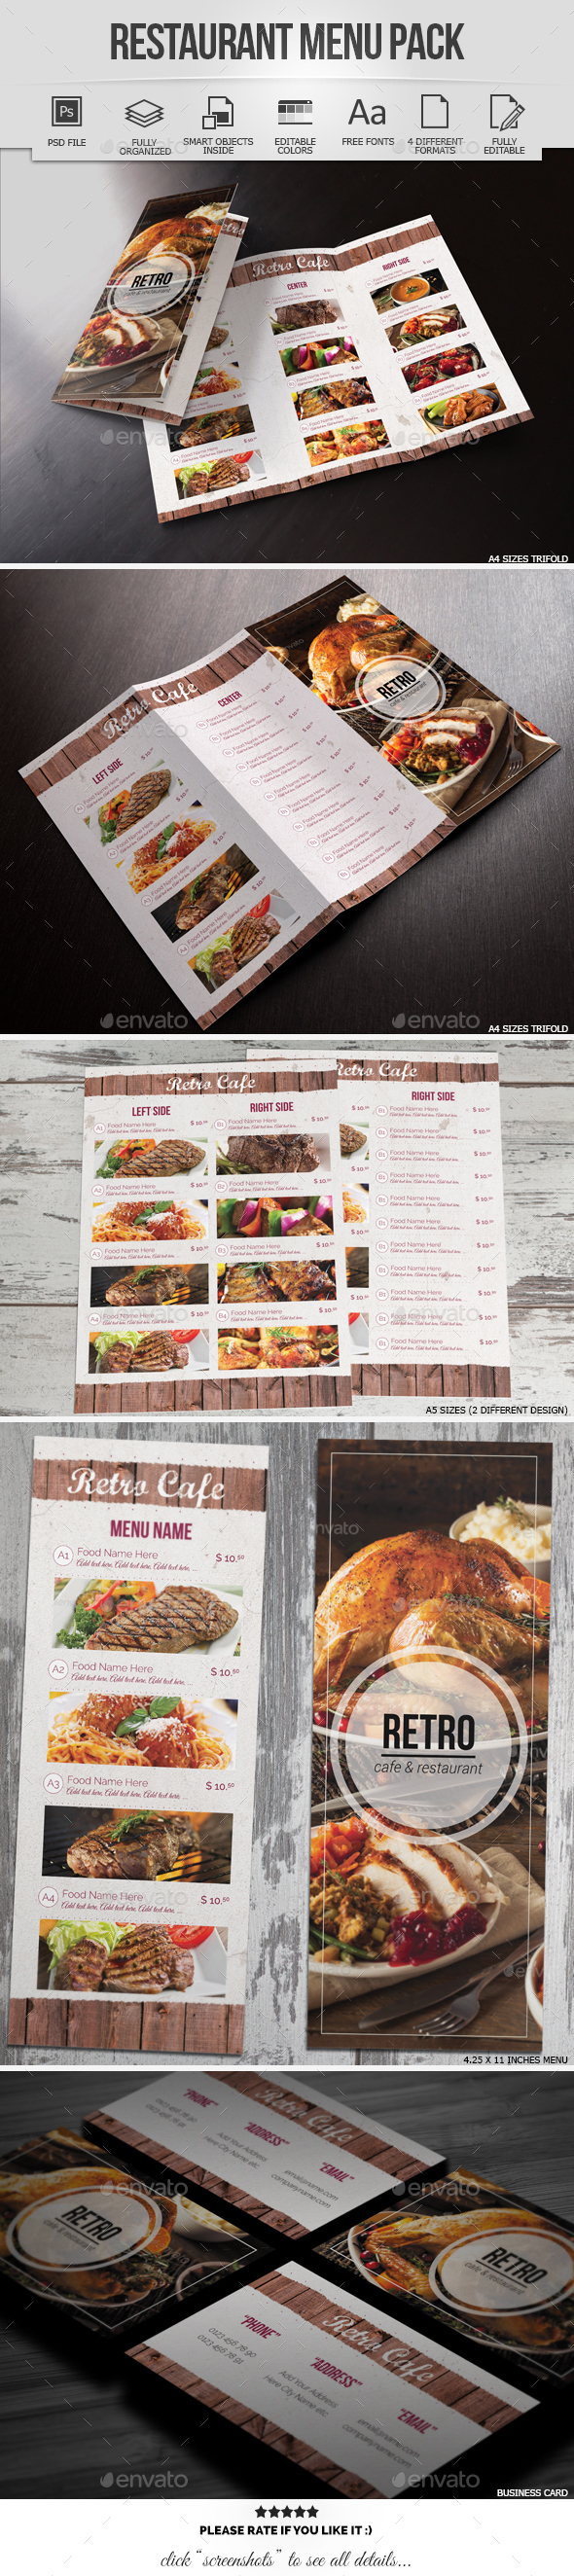 Restaurant & Cafe Menu Pack